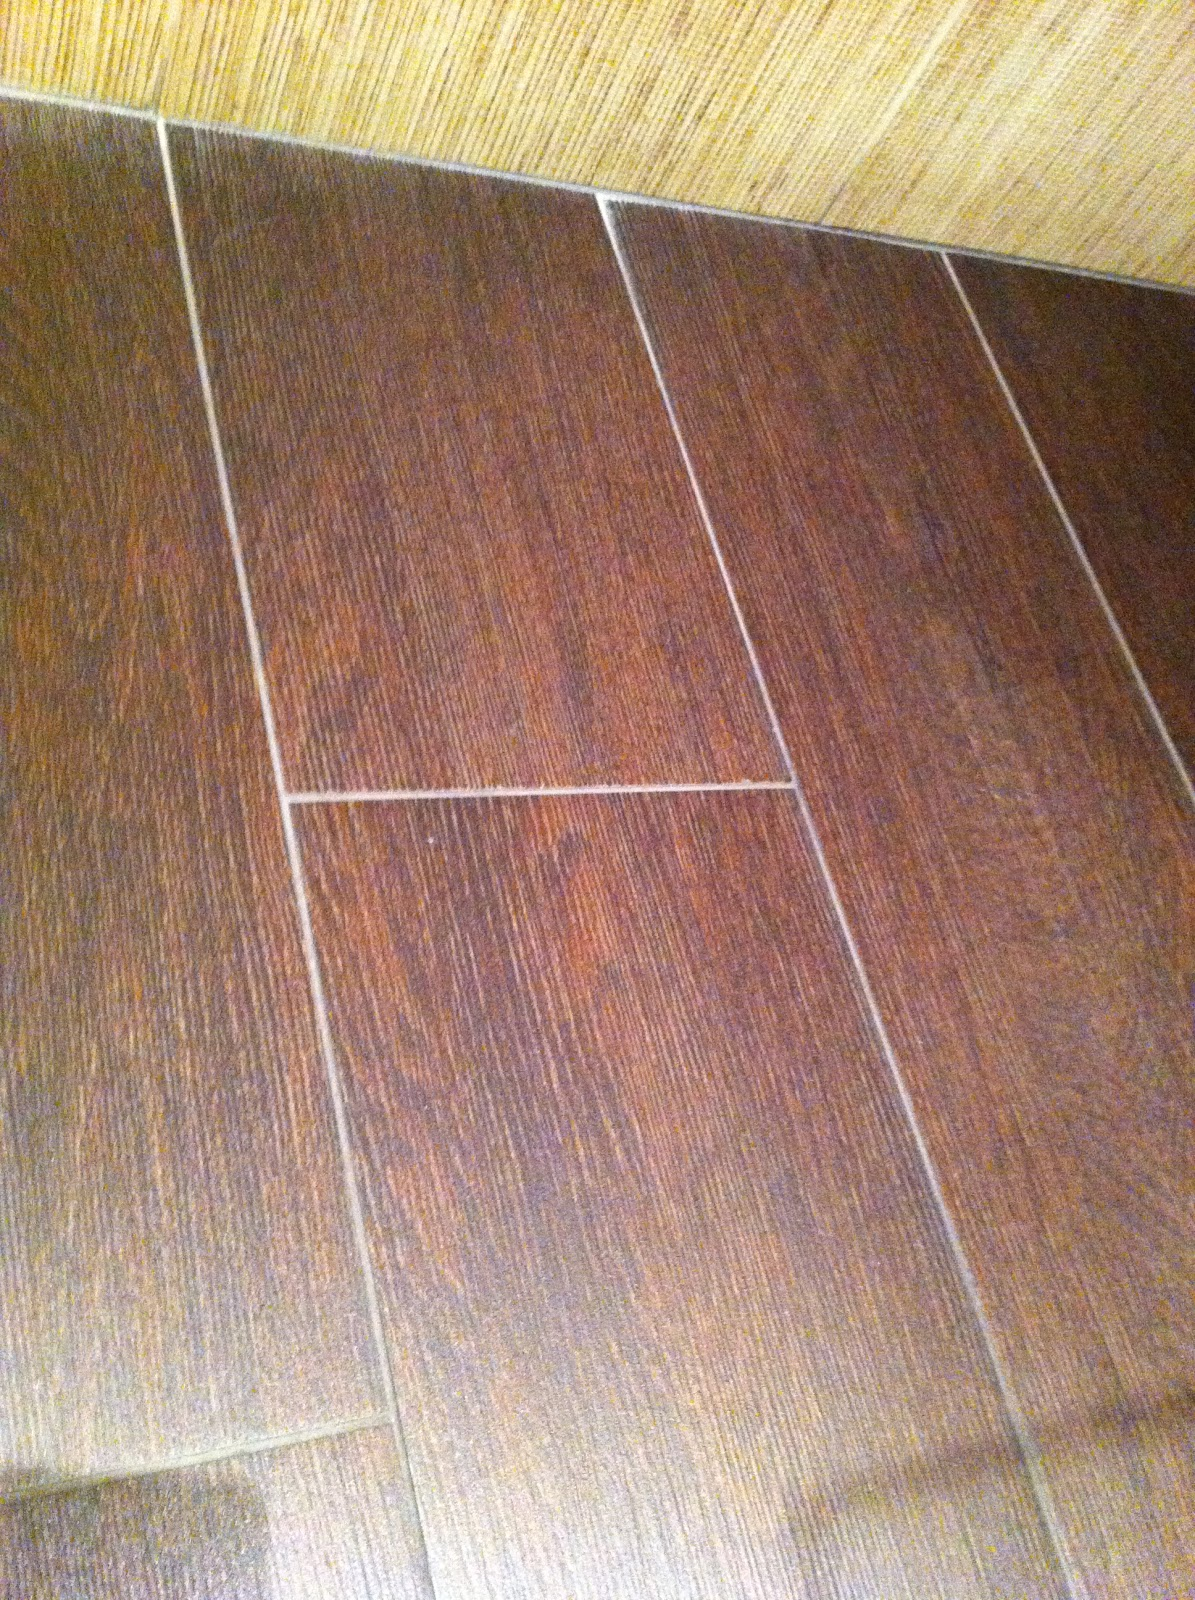 To da loos bamboo tiles and fake wood floor porcelaine for Fake tile floor